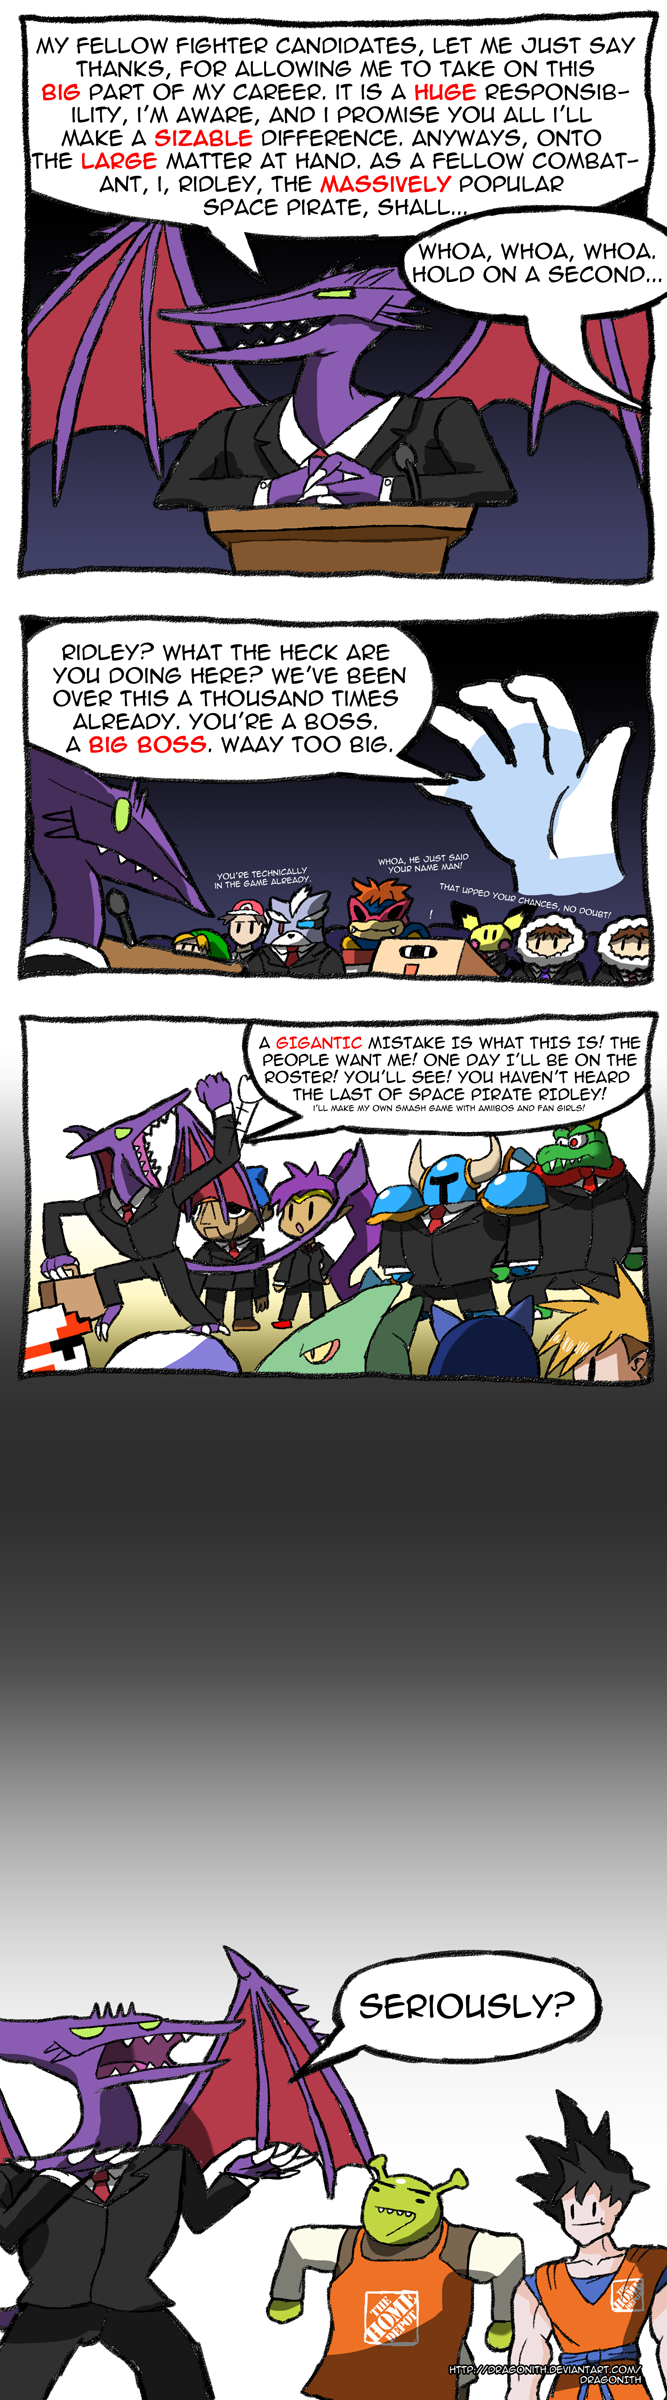 Ridley 4 President By Dragonith On Deviantart